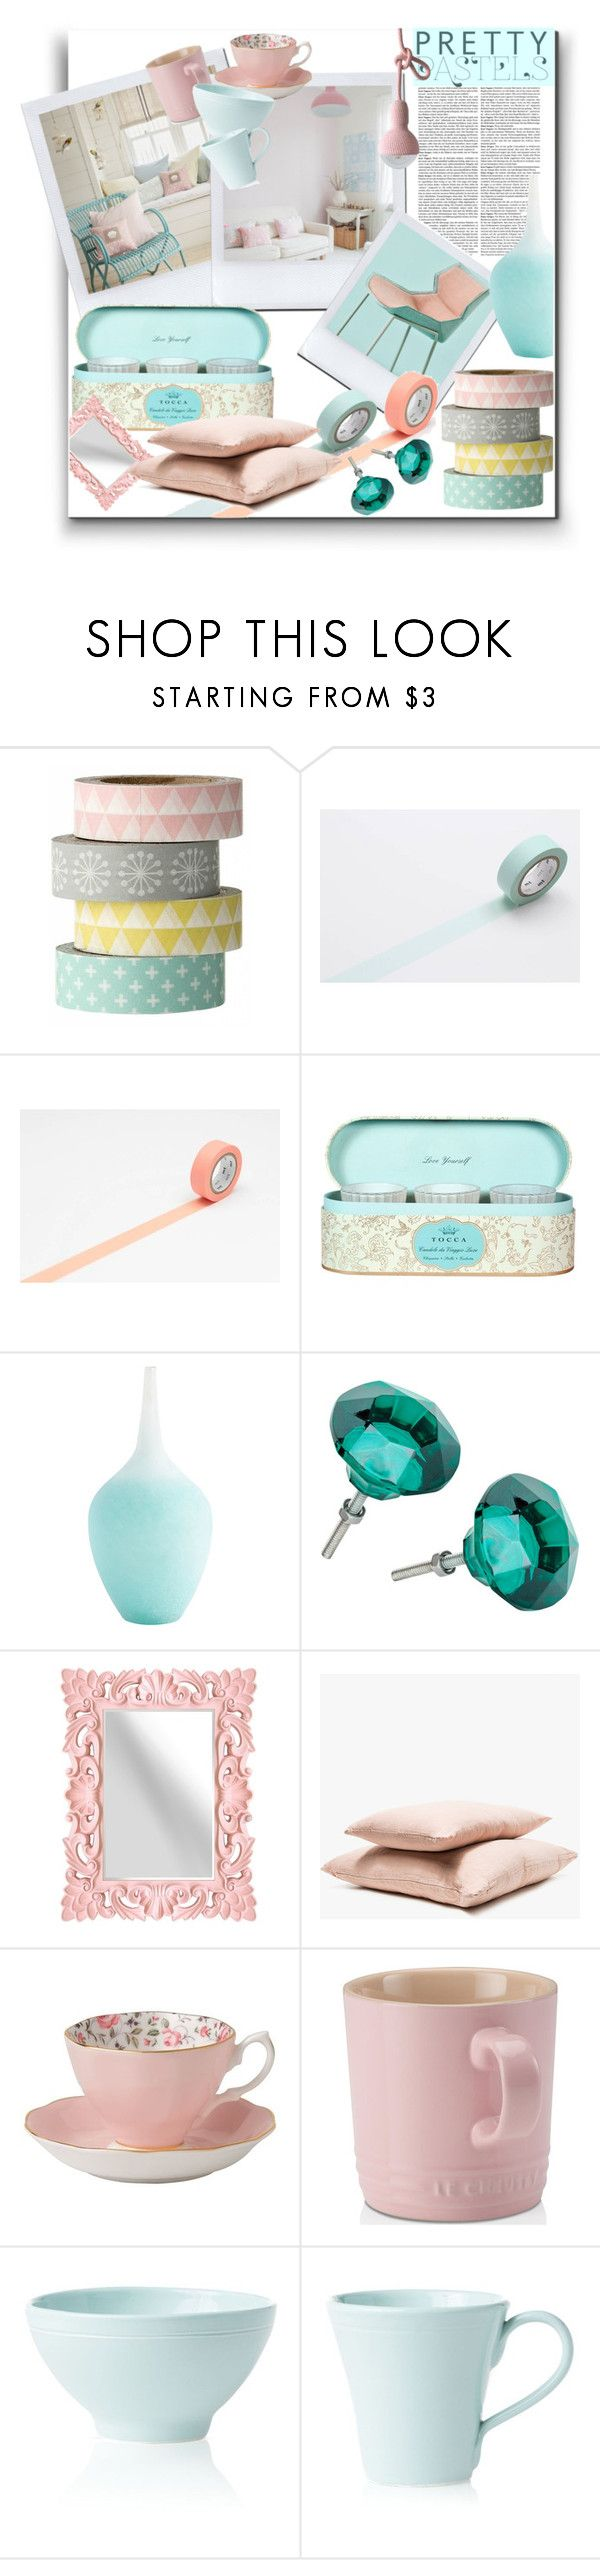 """""""Pastel decor"""" by marionmeyer ❤ liked on Polyvore featuring interior, interiors, interior design, home, home decor, interior decorating, Bloomingville, Hawkins, Royal Albert and Le Creuset"""